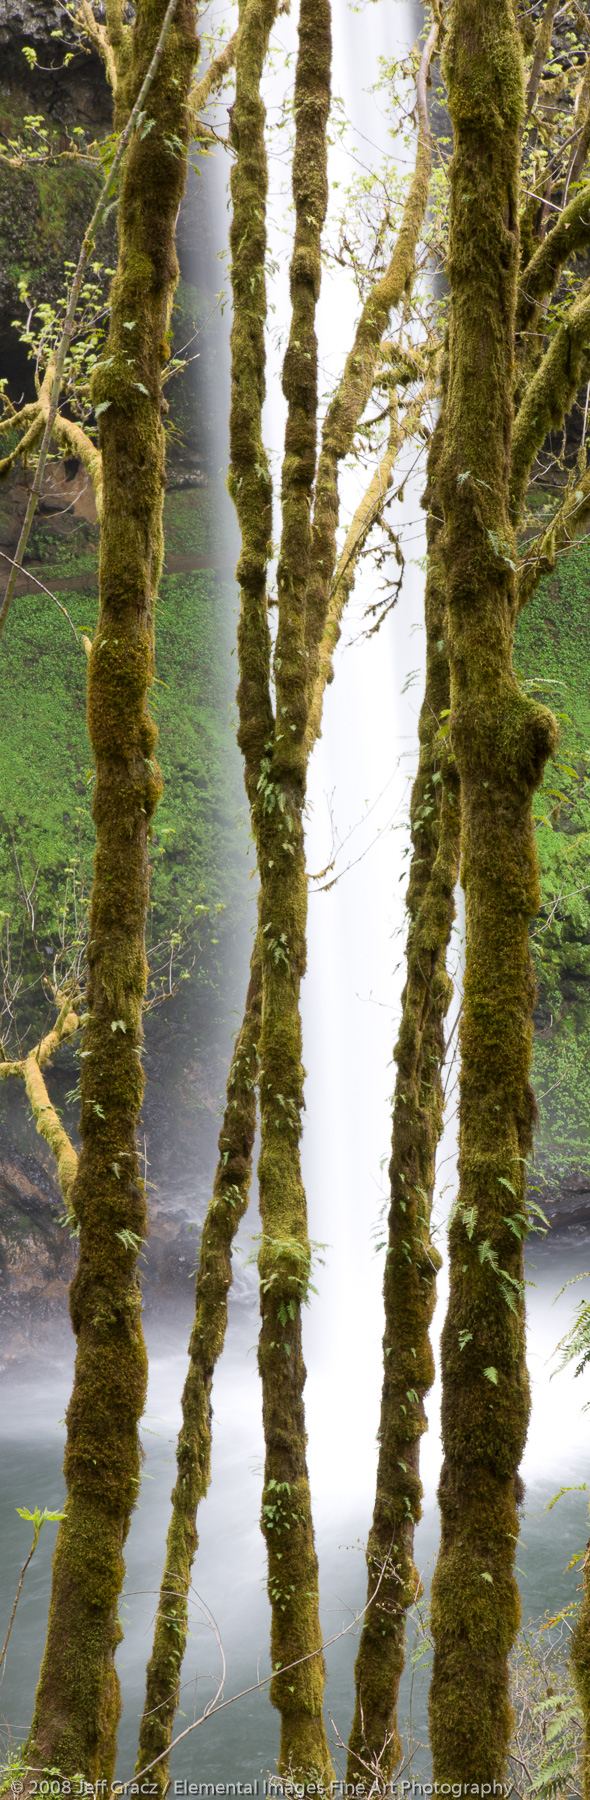 Tree trunks and waterfalls |  | OR | USA - © © 2008 Jeff Gracz / Elemental Images Fine Art Photography - All Rights Reserved Worldwide